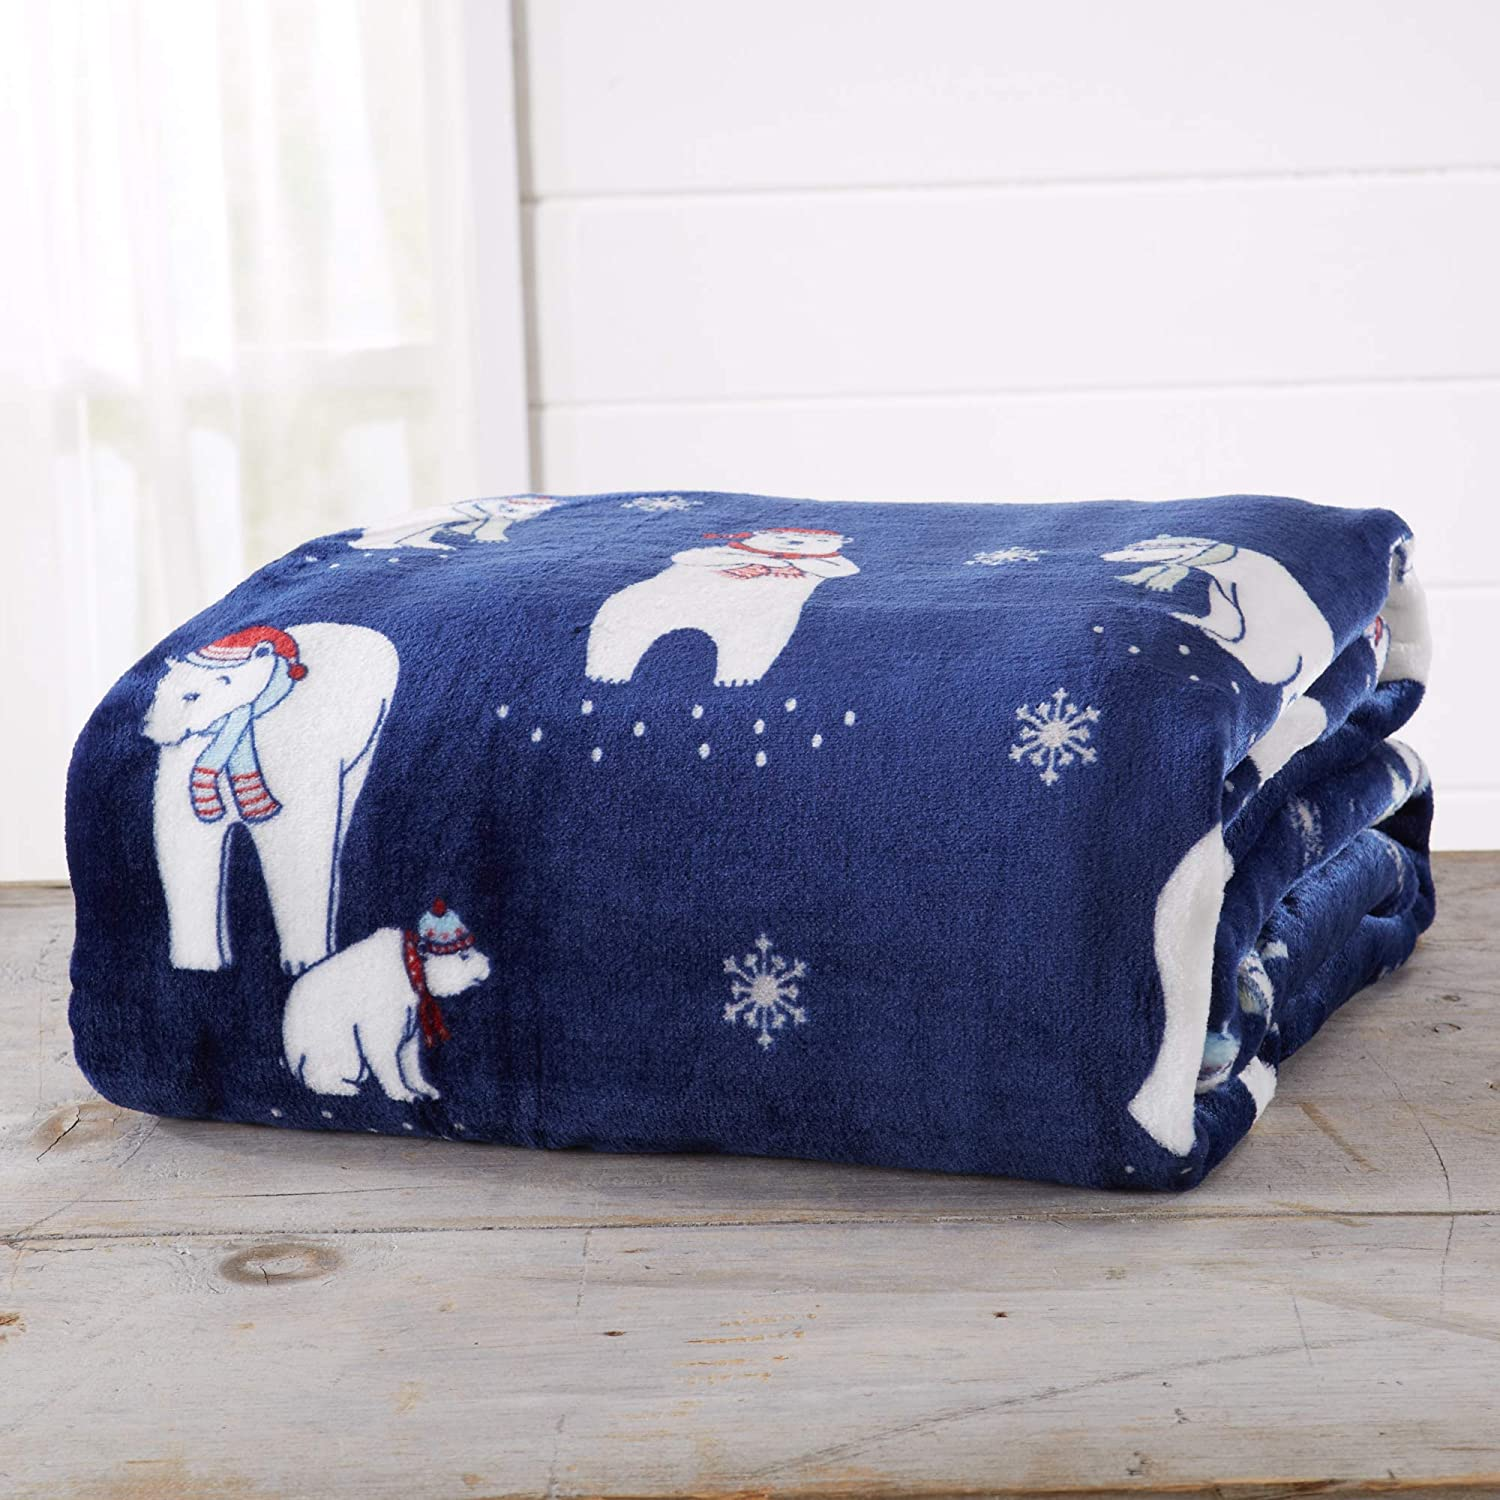 Snowman Great Bay Home Decorative Holiday Twin Blanket Super Soft Velvet Plush Christmas Design.